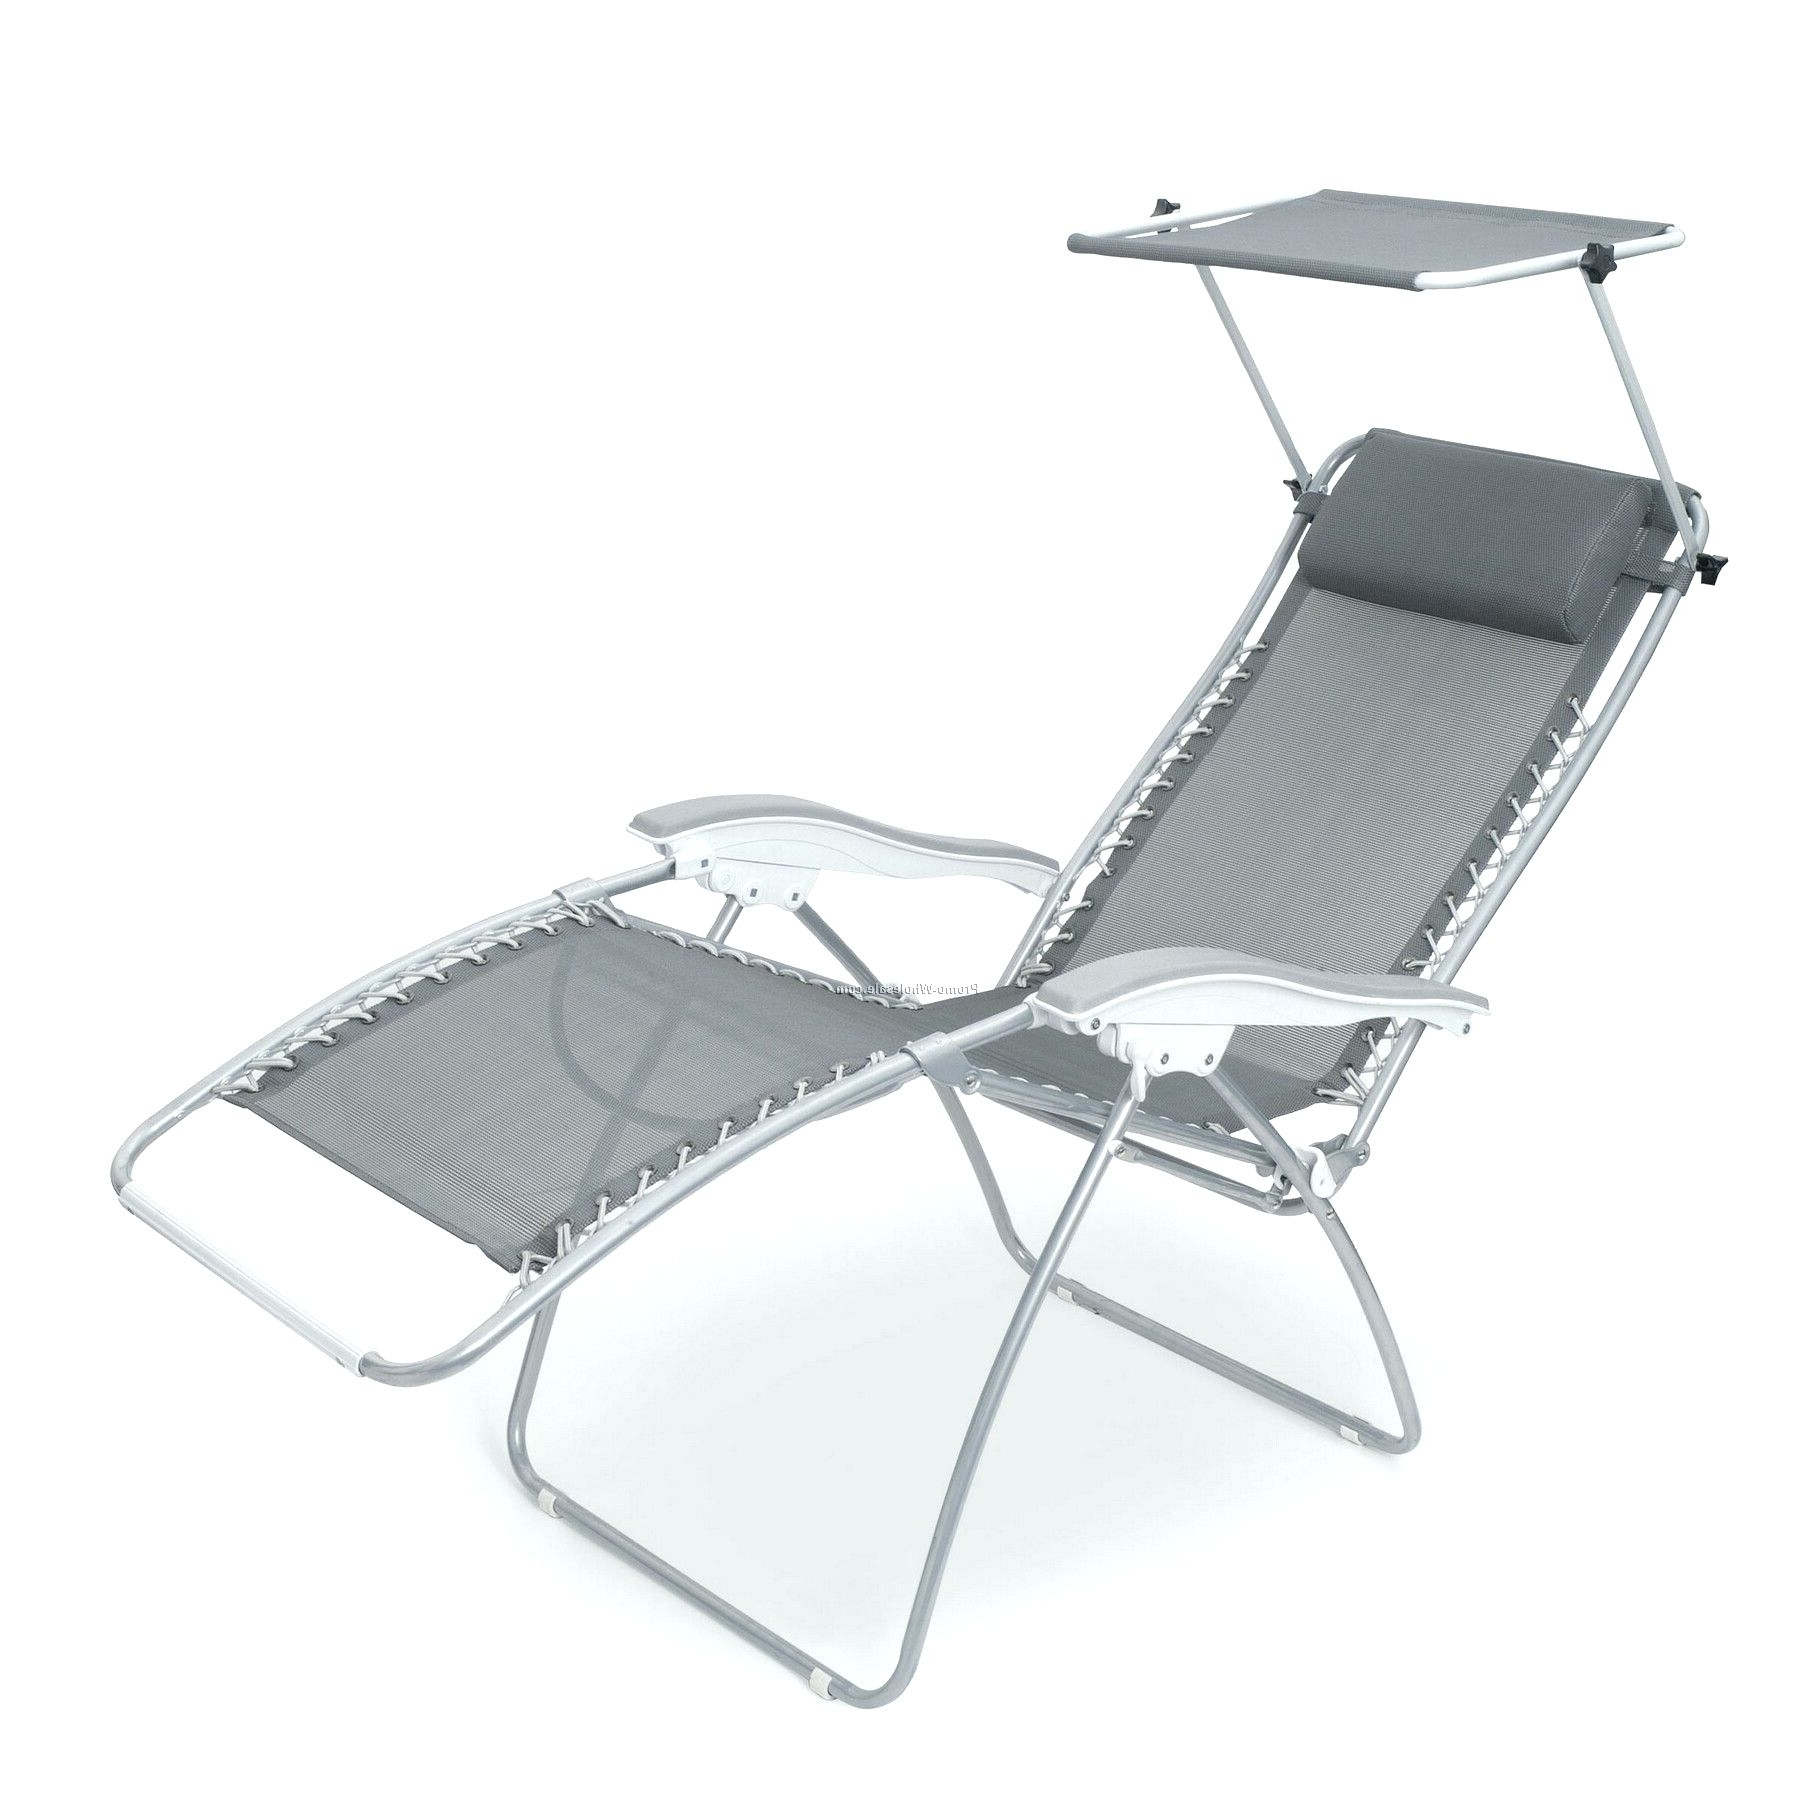 Most Recently Released Pvc Pipe Chaise Lounge Chairs • Lounge Chairs Ideas Inside Pvc Chaise Lounges (View 8 of 15)